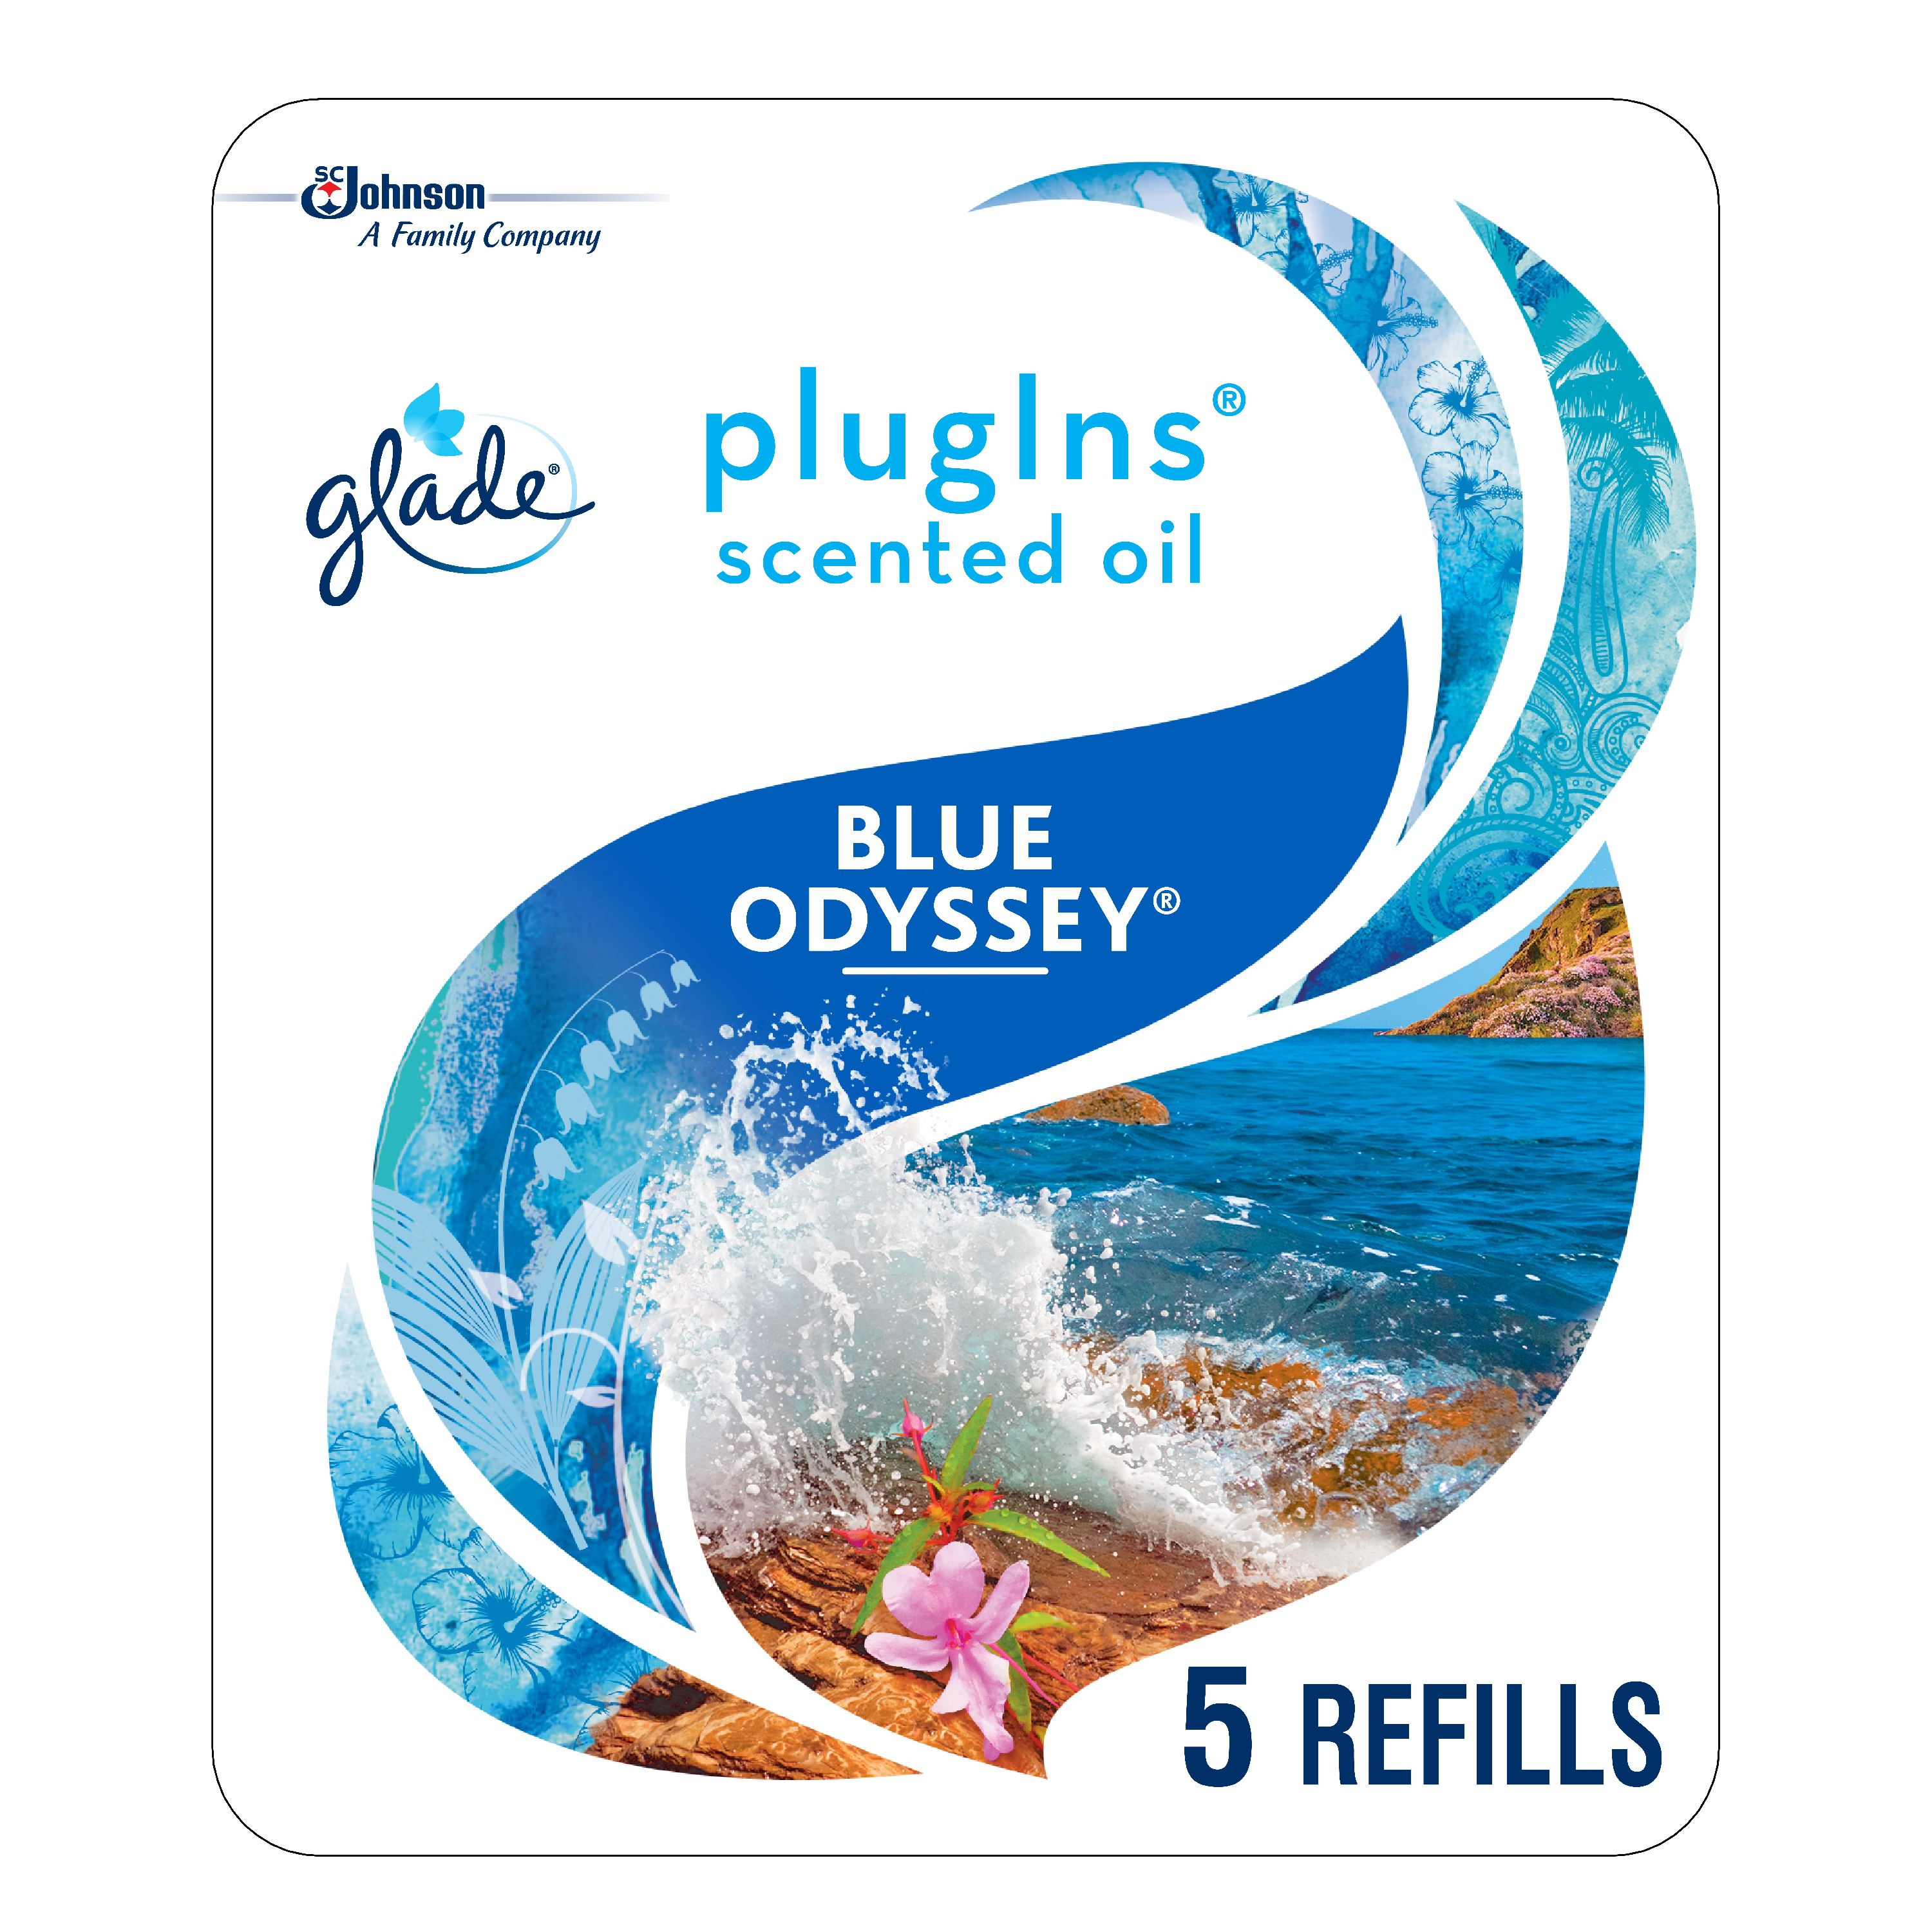 Glade PlugIns Scented Oil Refill Blue Odyssey, Essential Oil Infused Wall Plug In, Up to 50 Days of Continuous Fragrance, 1.34 oz, Pack of 5